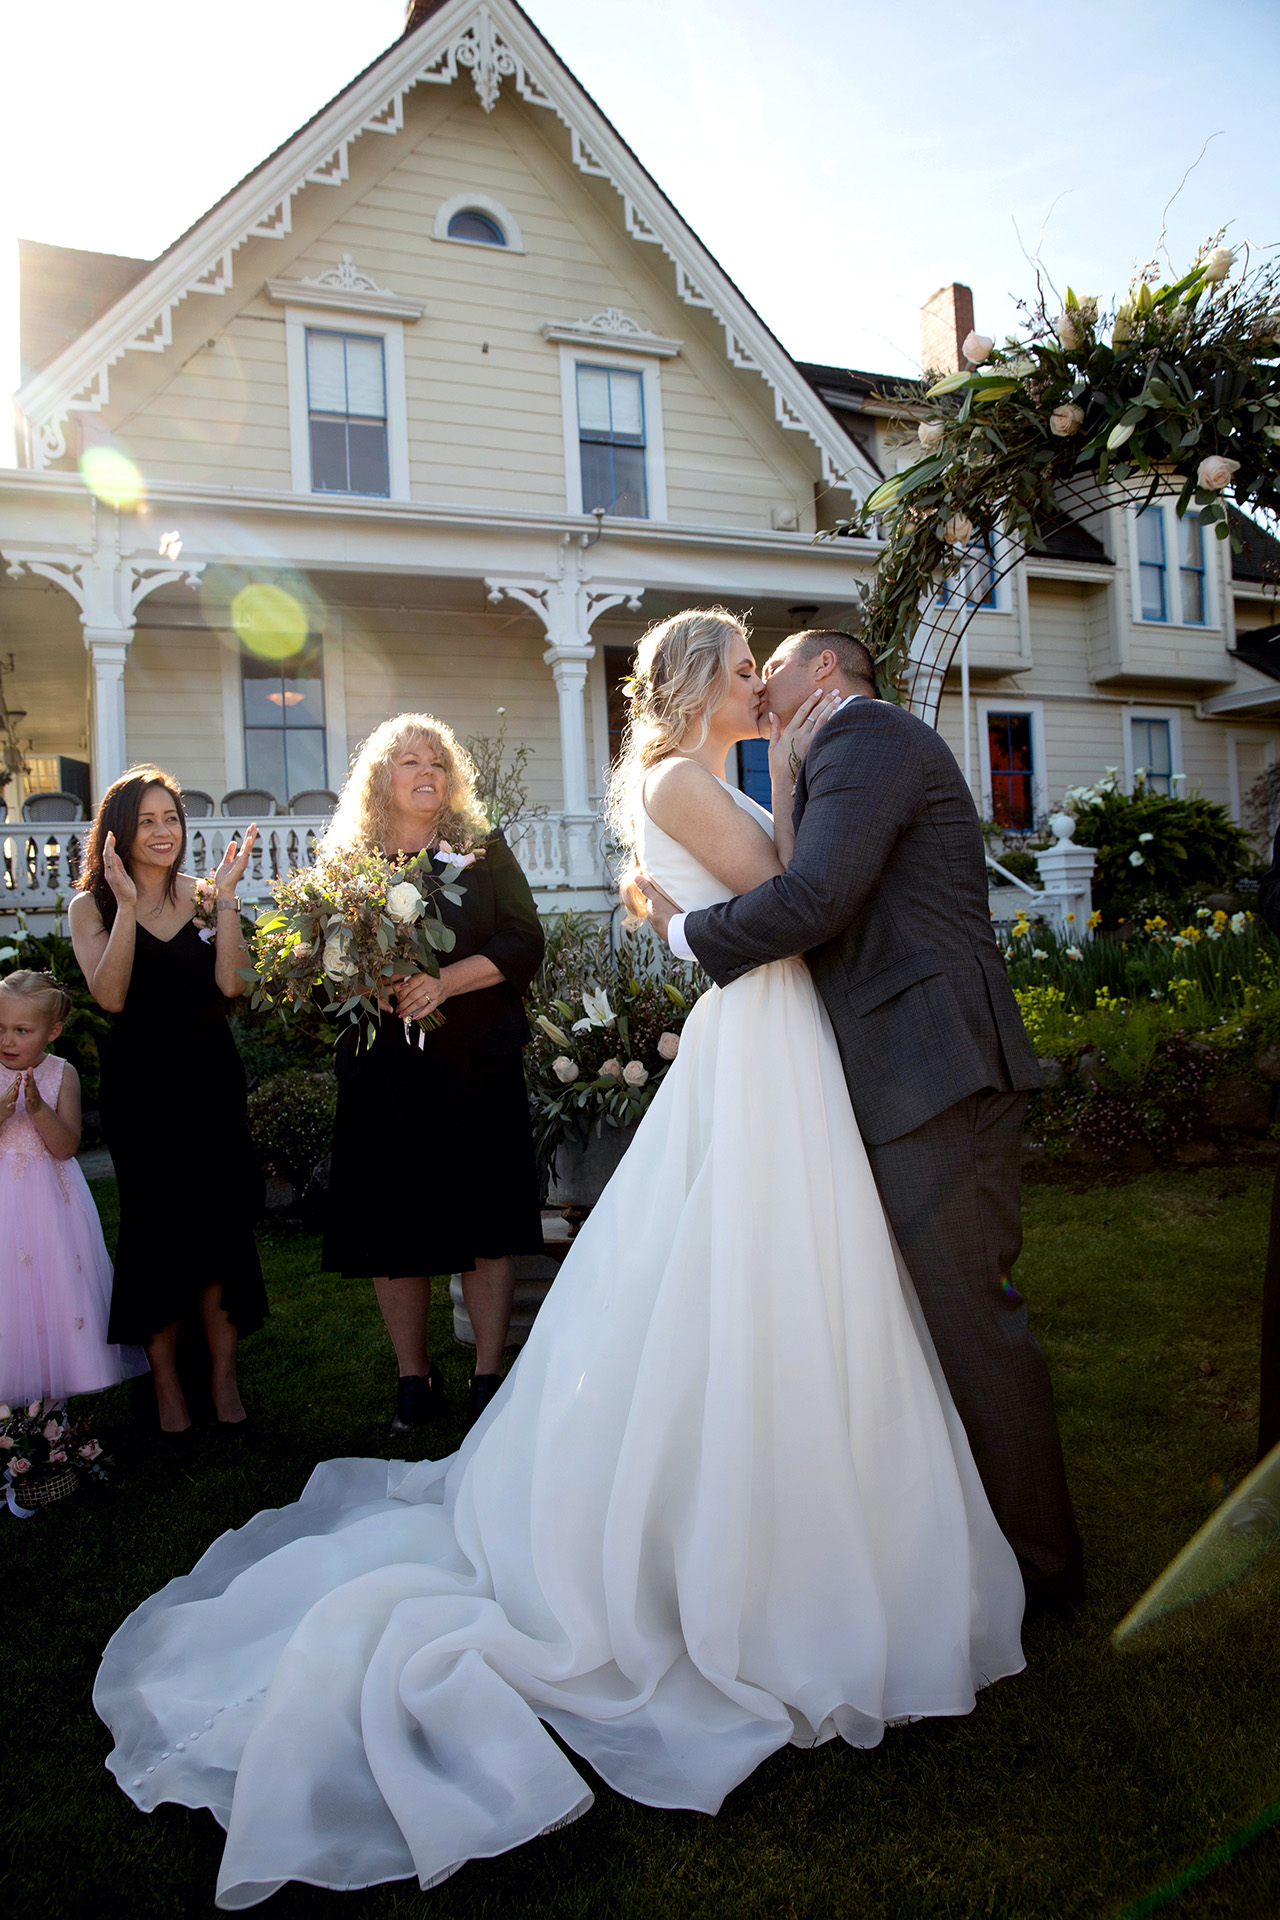 California Outdoor Ceremony Elopement Kiss Picture | first kiss as a married couple